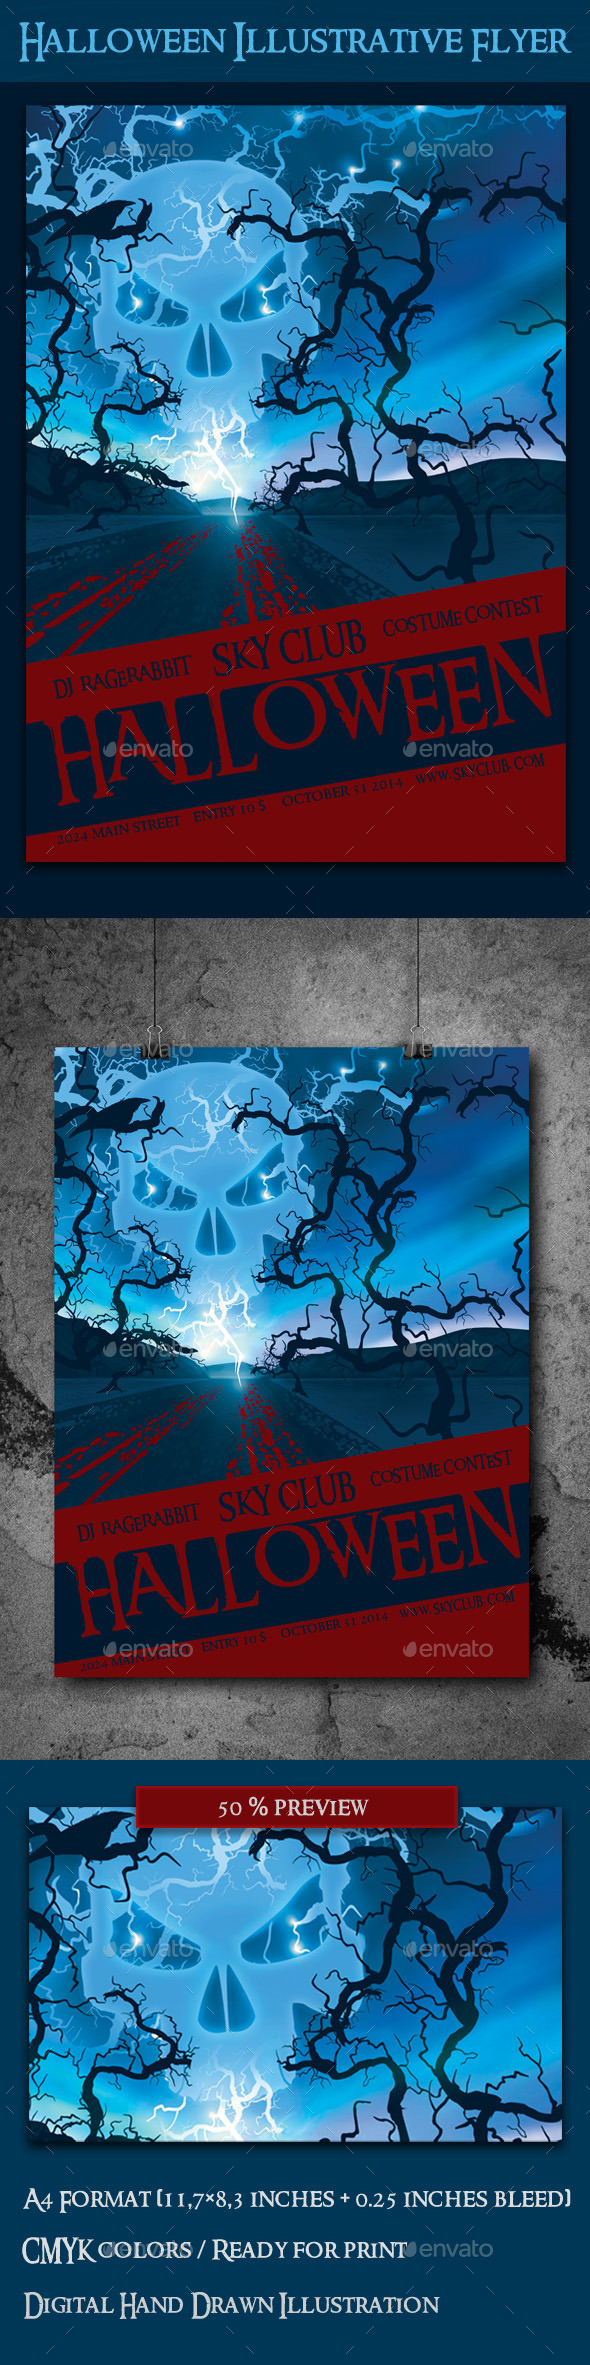 GraphicRiver Halloween Illustrative Flyer Template 8853677